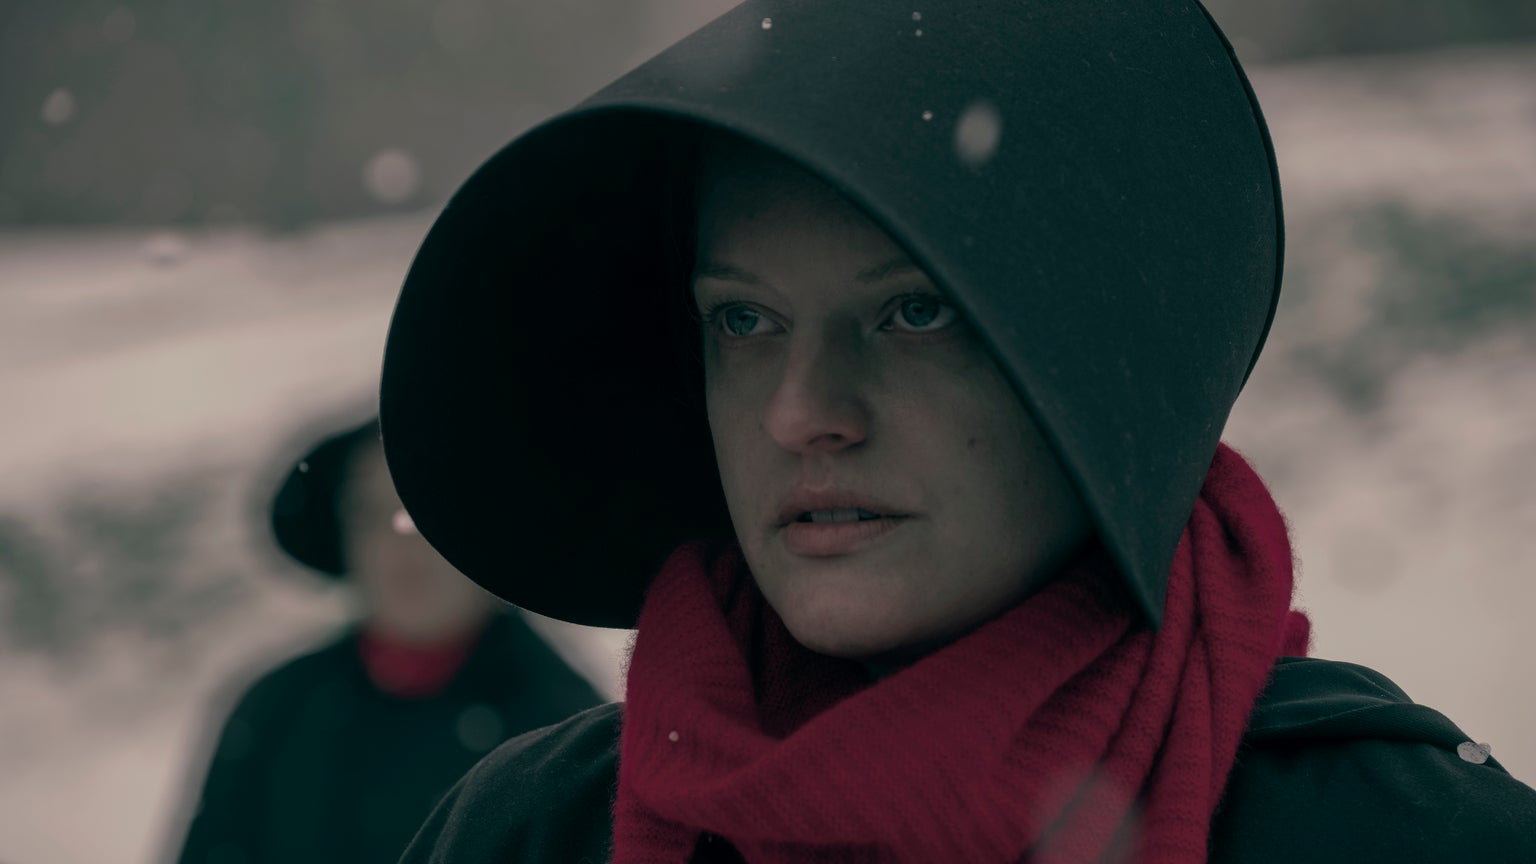 The Handmaid's Tale Finally Gives Us A Much-Needed Glimmer Of Hope